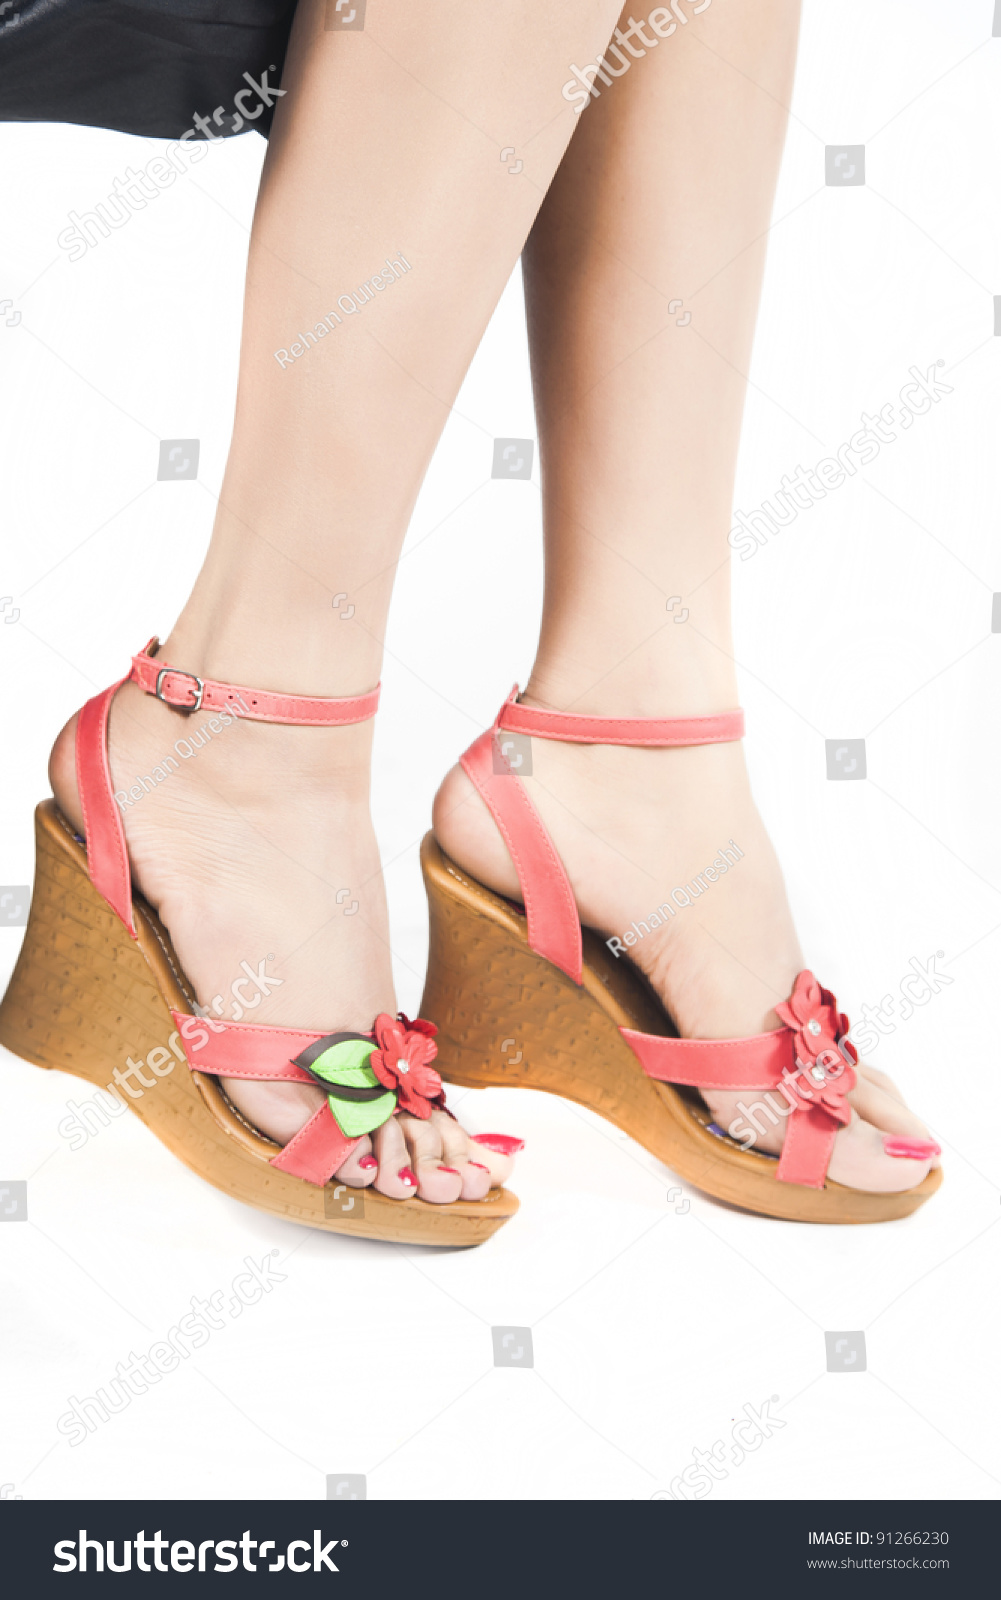 Womans Feet Fashion Shoes Isolated On Stock Photo (100% Legal ...